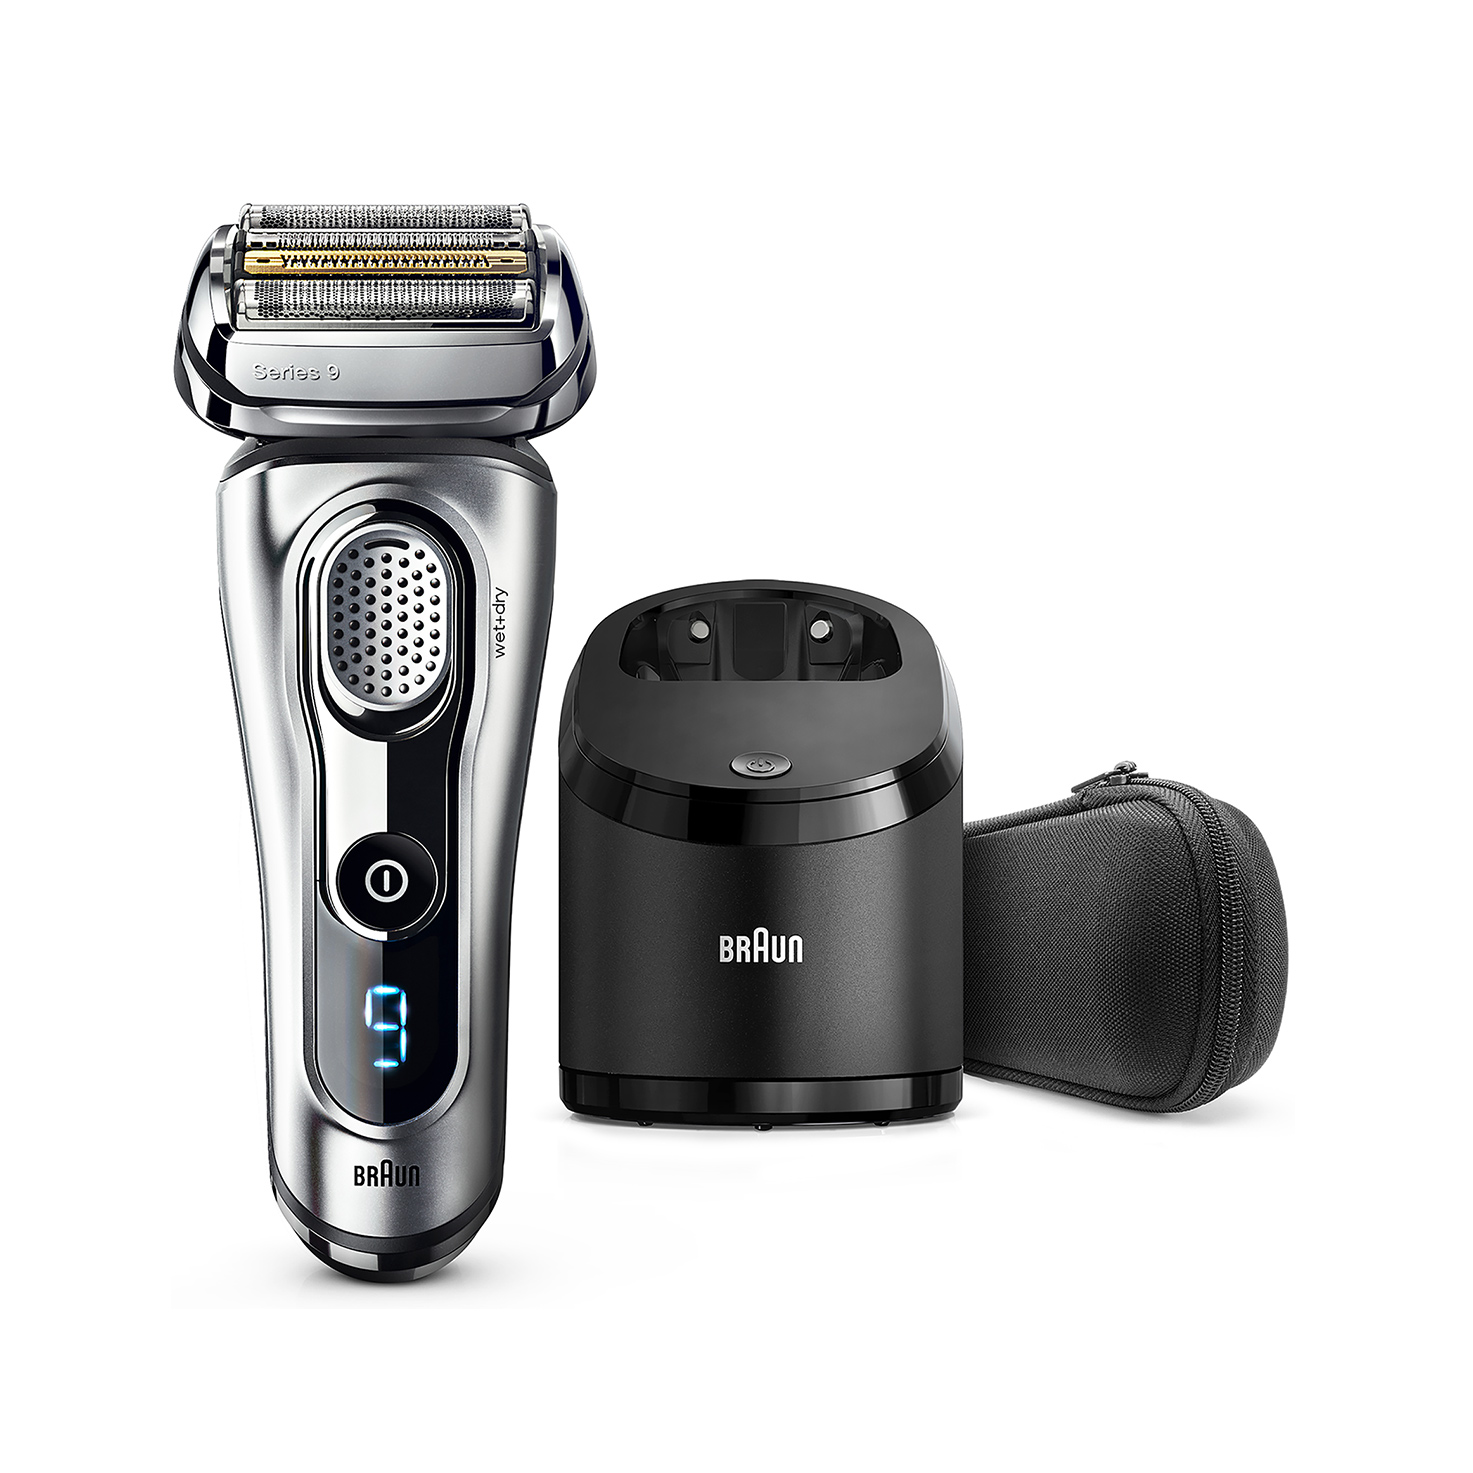 Series 9 9290cc Wet & Dry shaver image 1